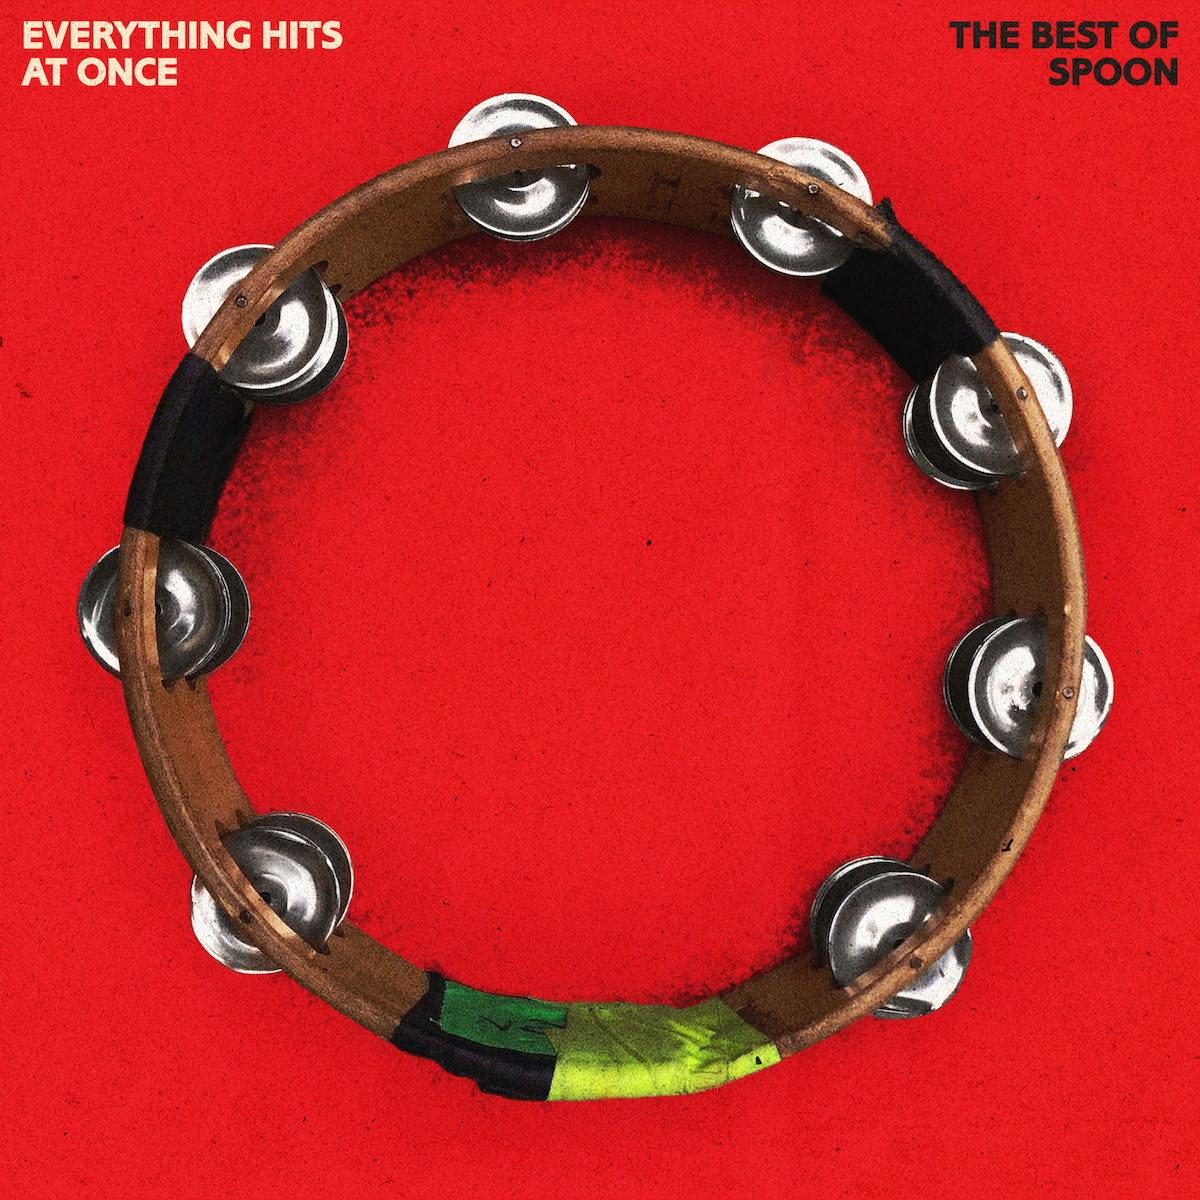 Spoon Everything Hits At once artwork cover digital